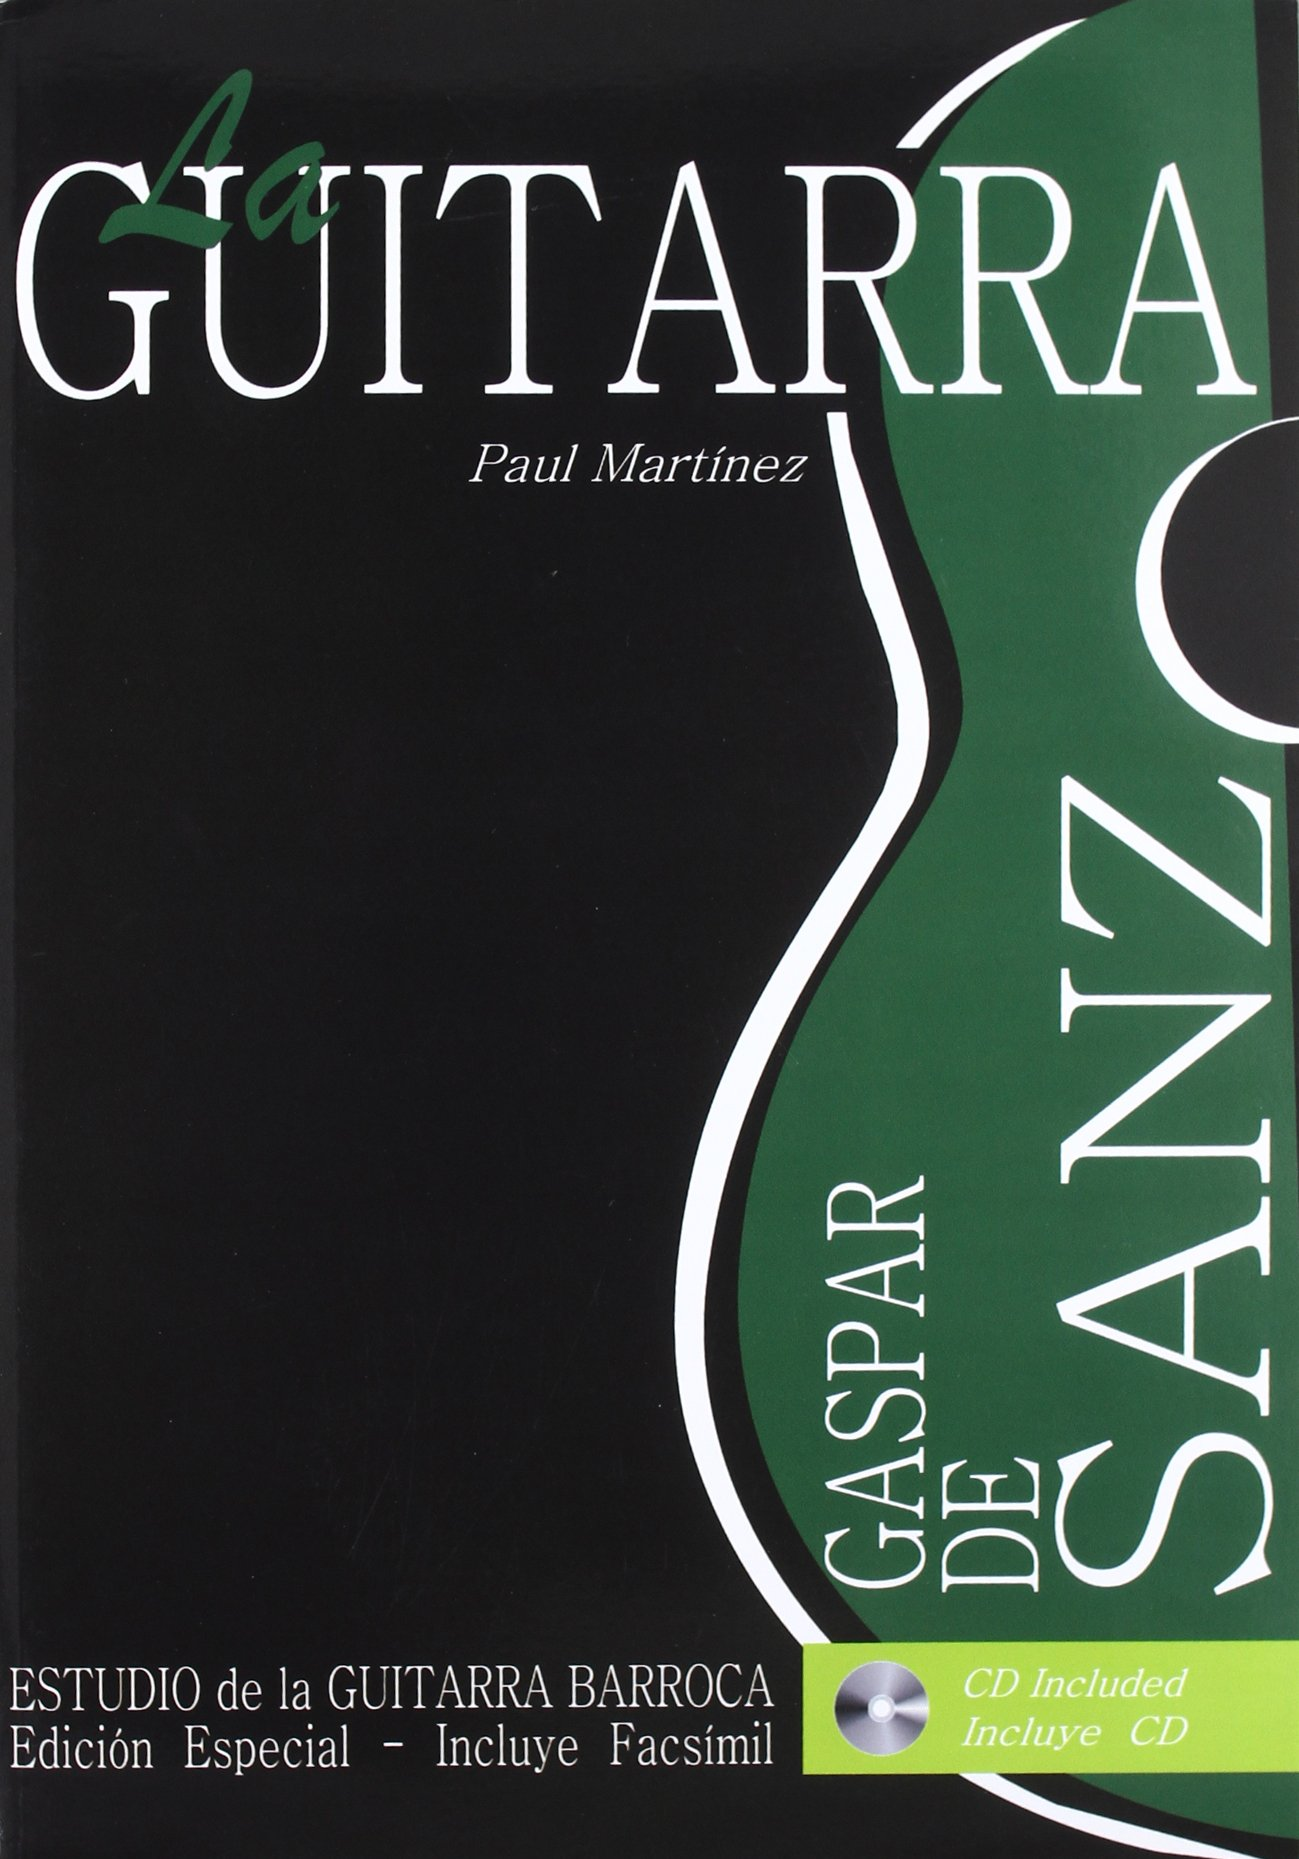 Gaspar de sanz - estudio de la guitarra barroca + CD: Amazon.es ...